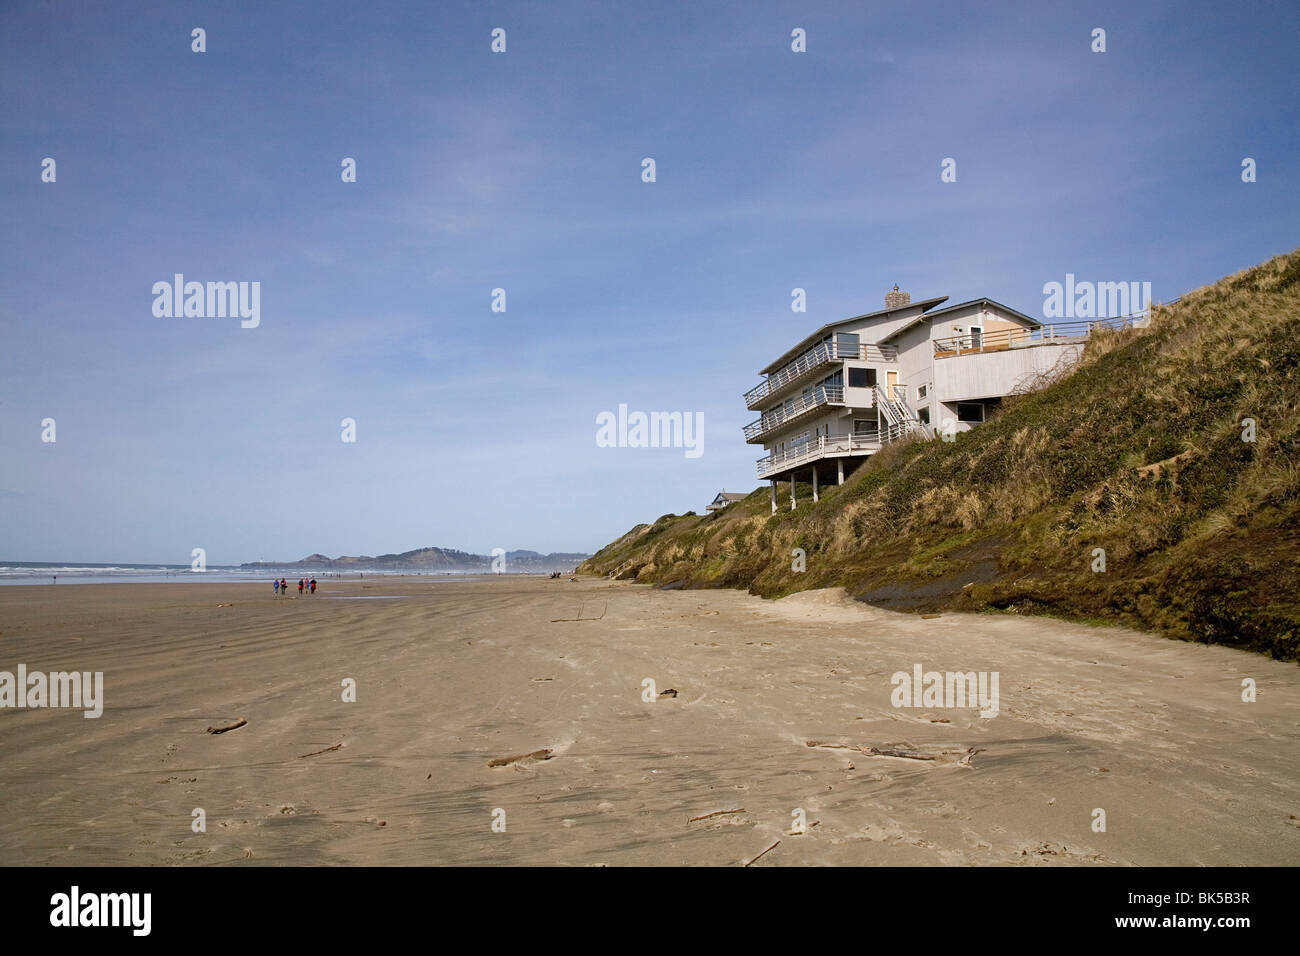 Nice Beach House Newport Oregon Part - 12: A Beach House Sits On Sand Dunes Eroded By High Water And Wind On The Oregon  Pacific Coast In Newport, Oregon